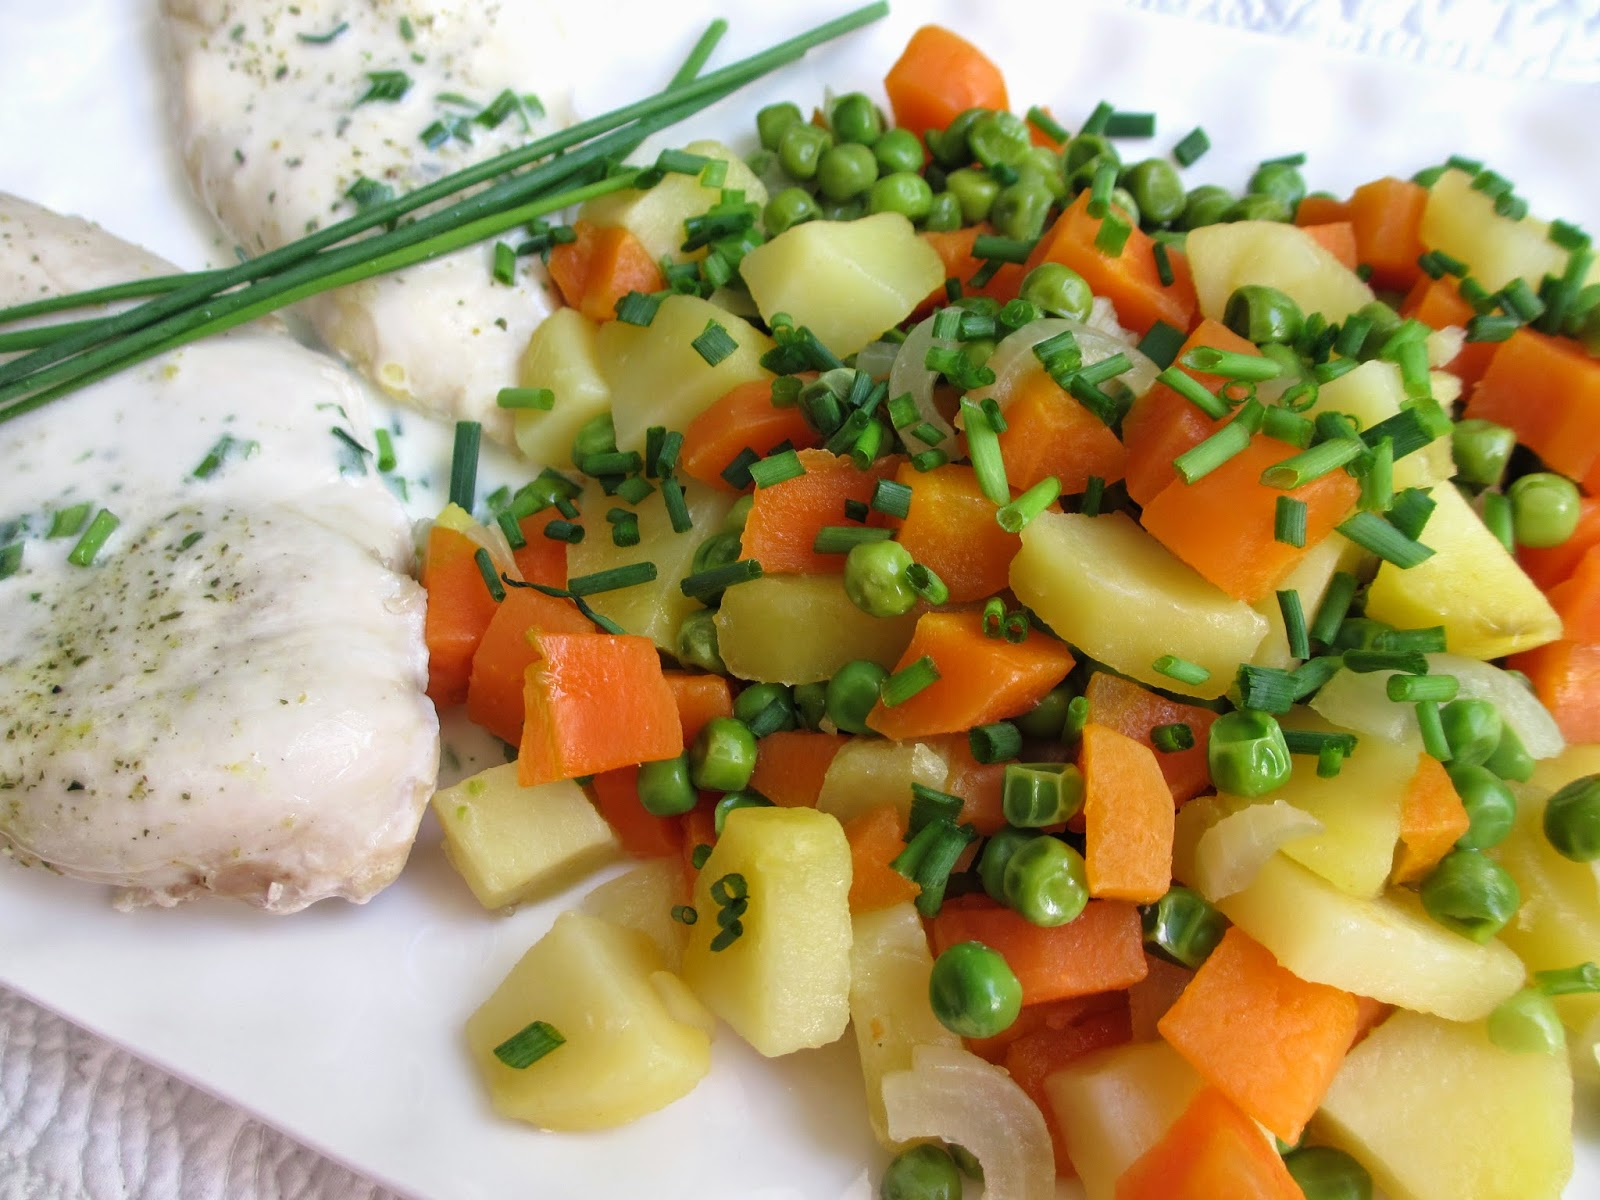 Cooking julia filets de poulet et leur jardini re de l gumes - Cuisiner des filets de poulet ...